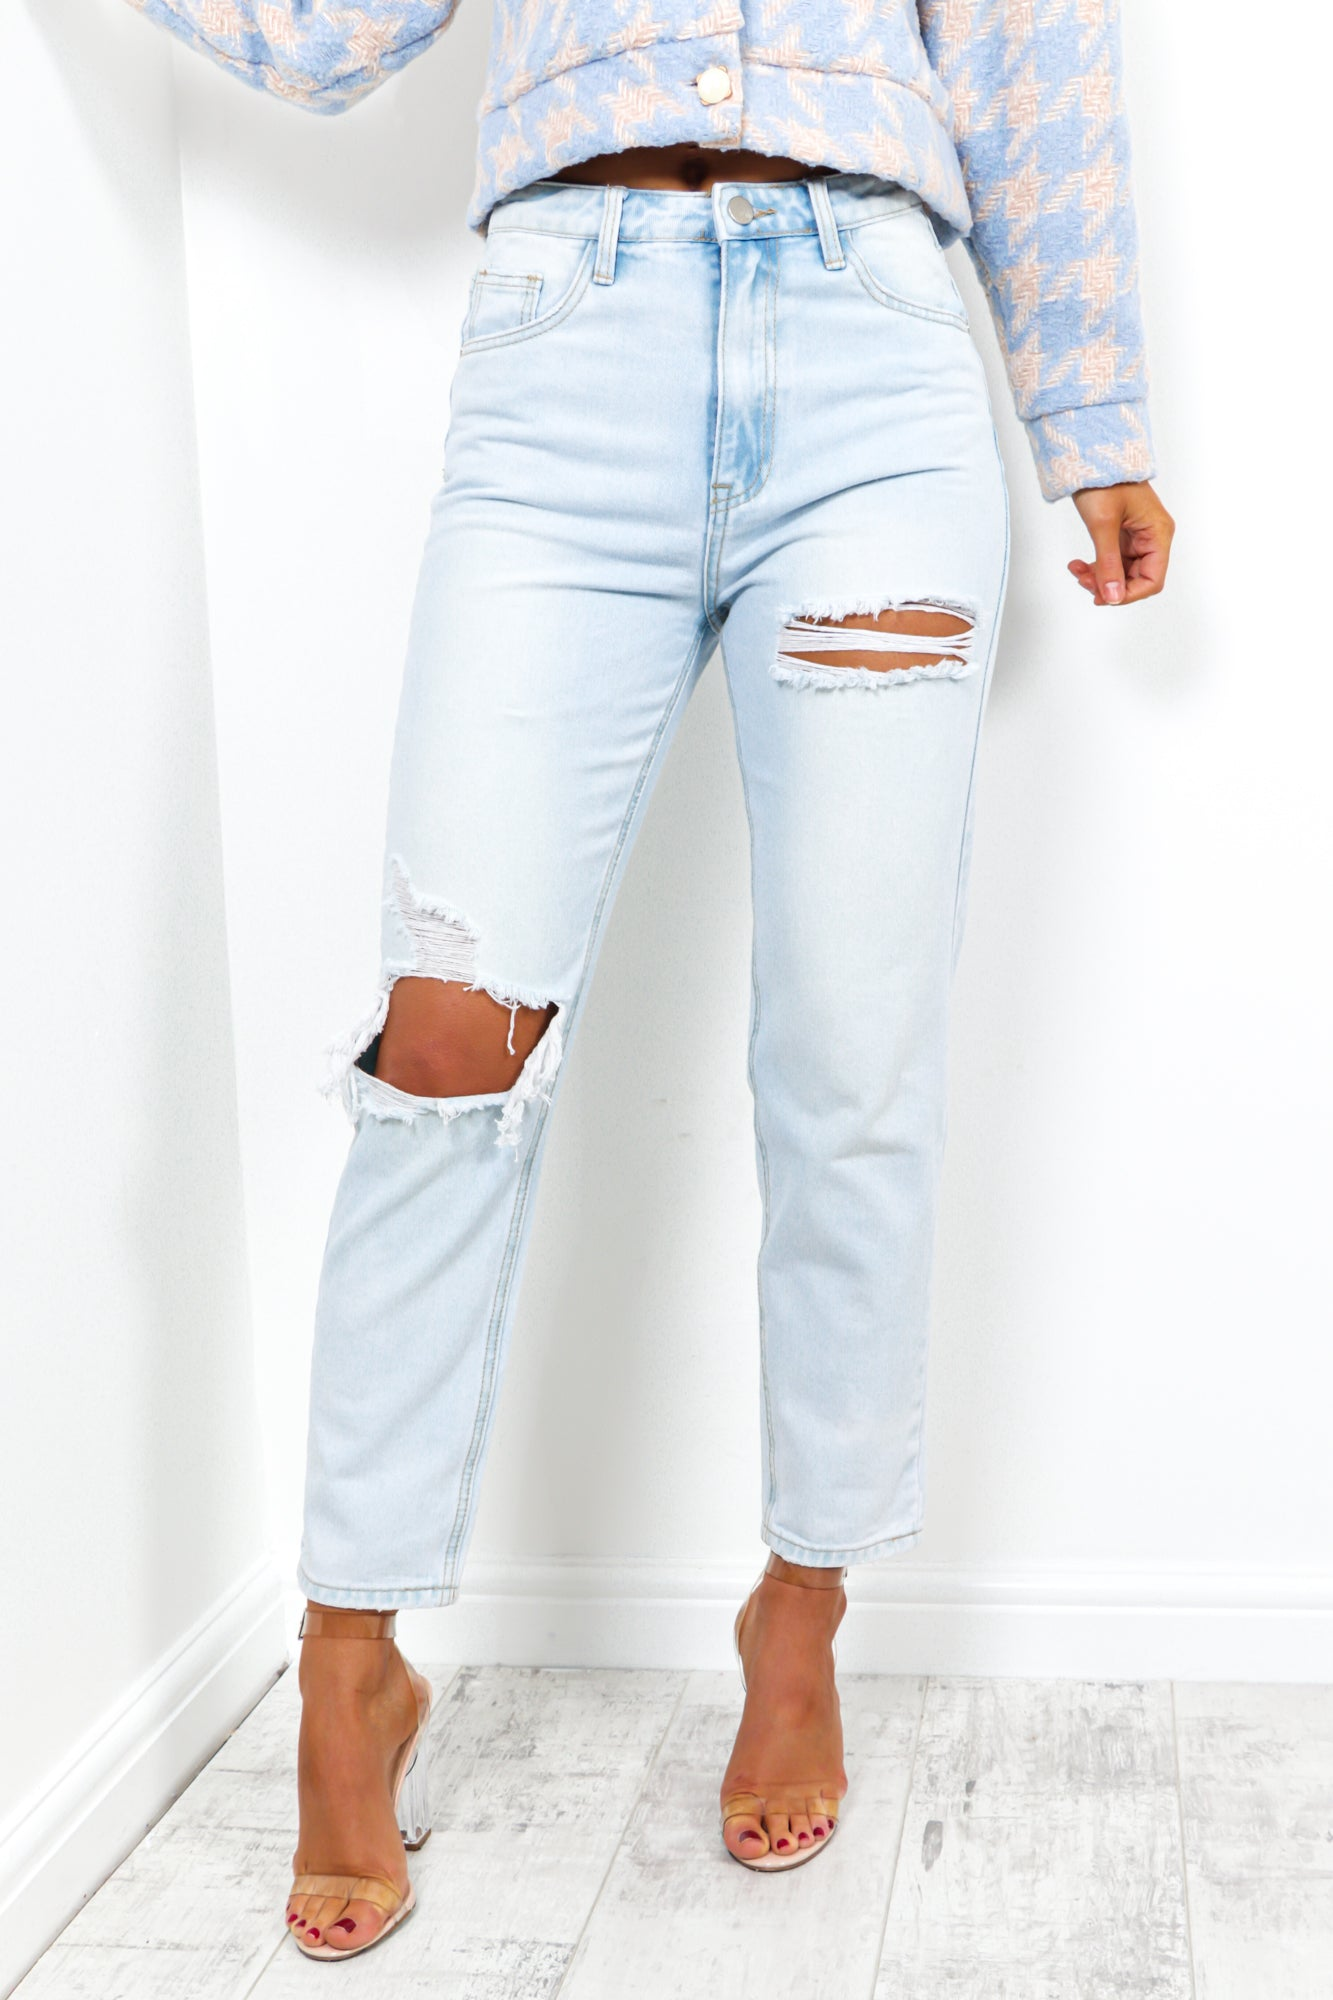 Hole Hearted - Jeans In LIGHT-WASH/DENIM